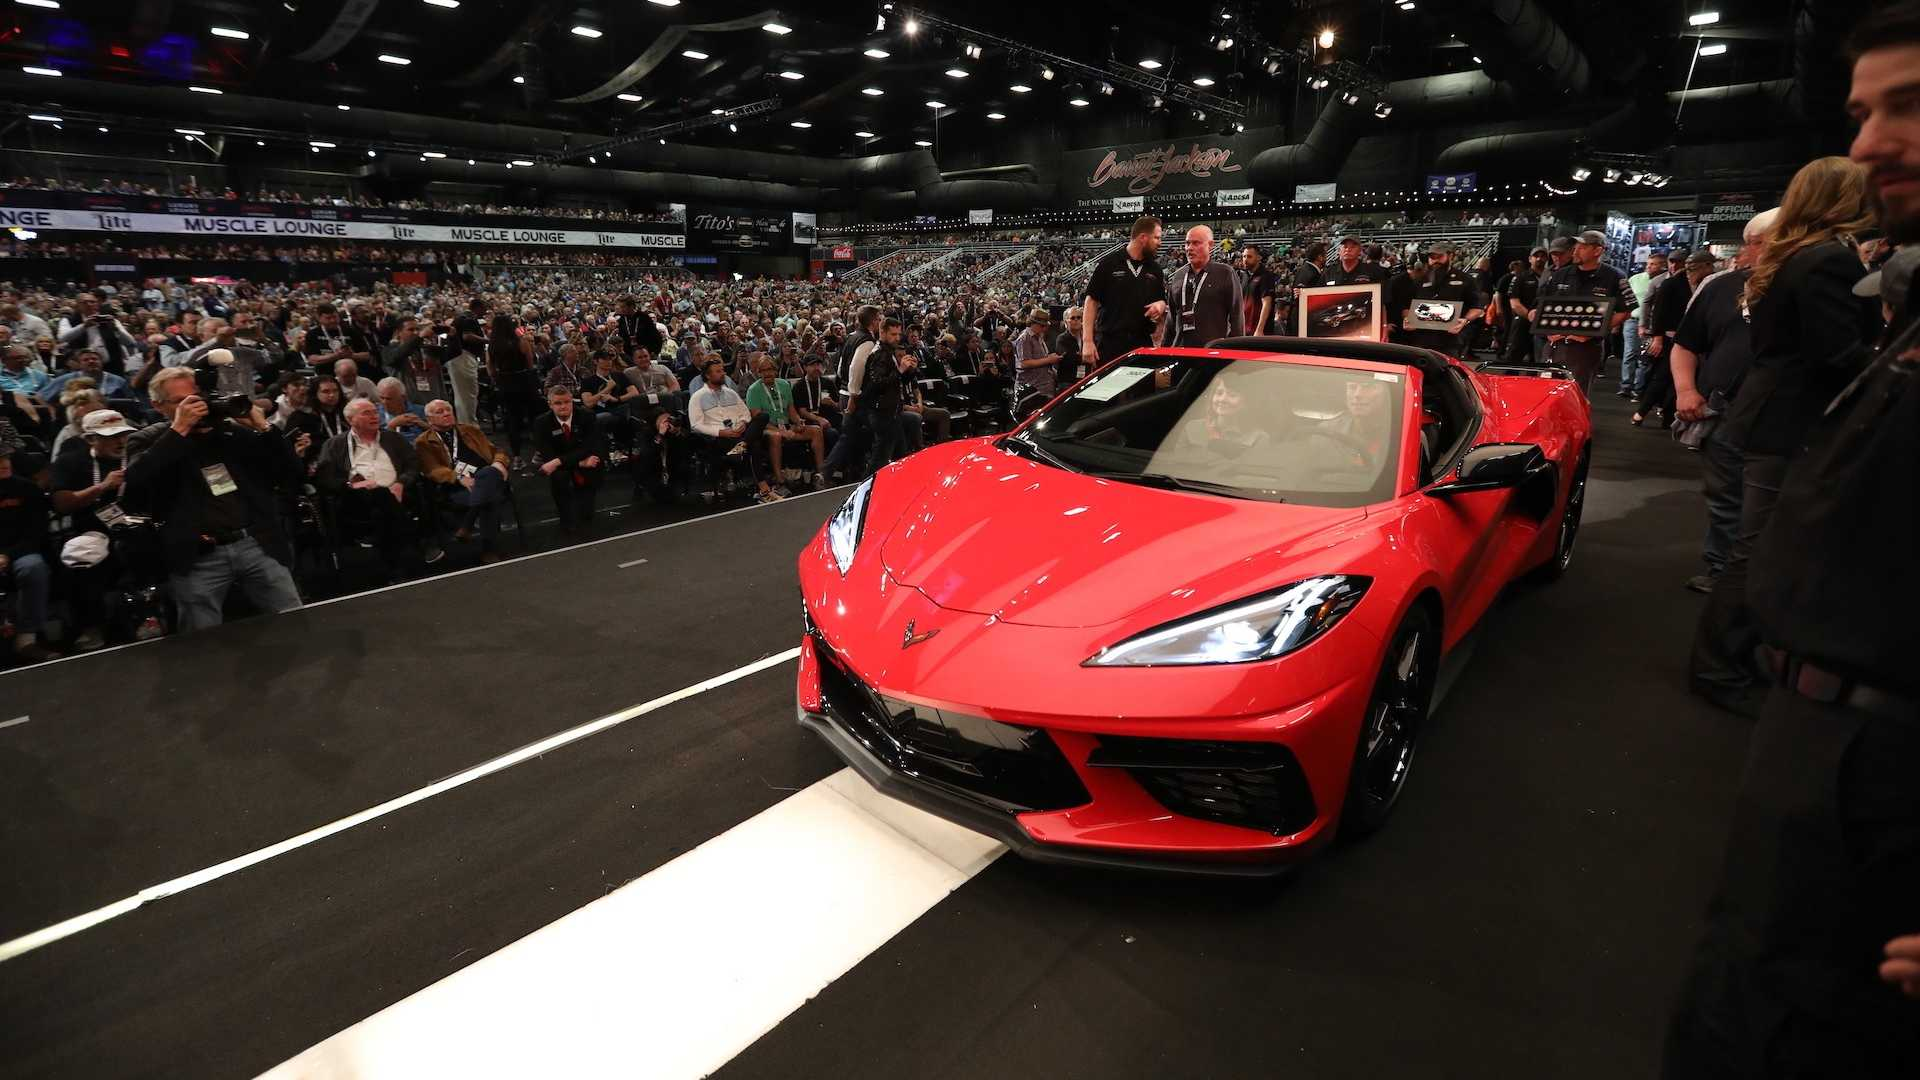 2020_Chevrolet_Corvette_Stingray_VIN_001_Sold_0002